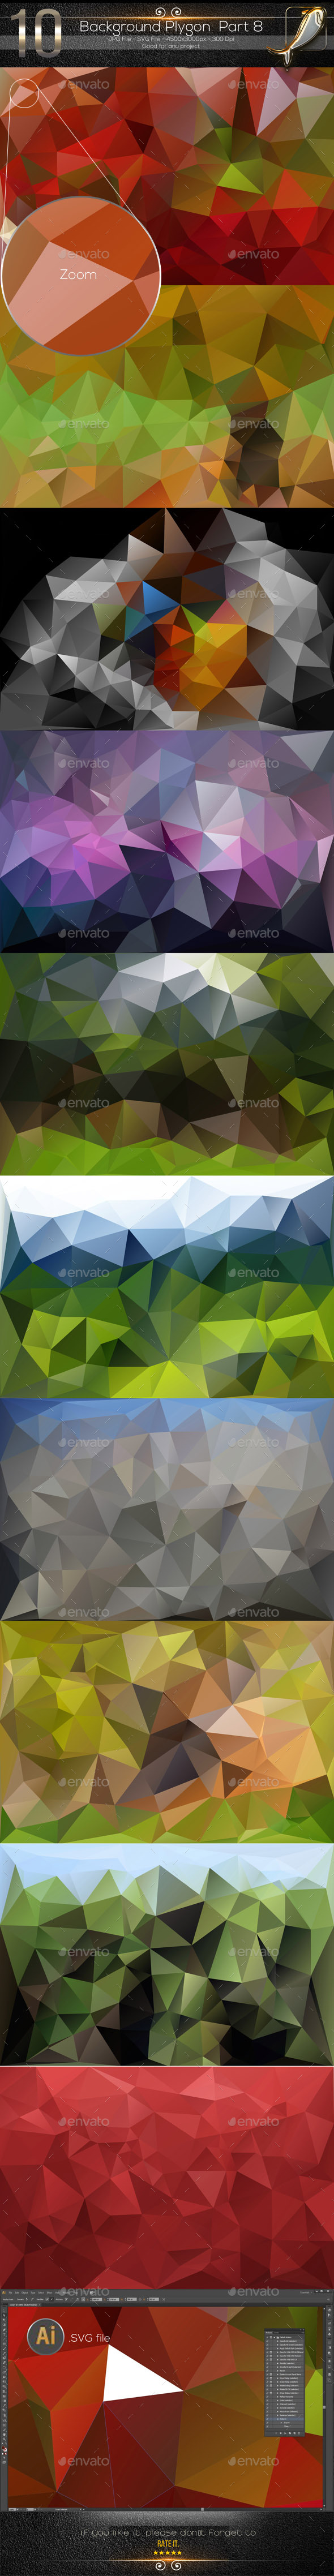 10 Backgrounds Polygon Part 8 - Abstract Backgrounds